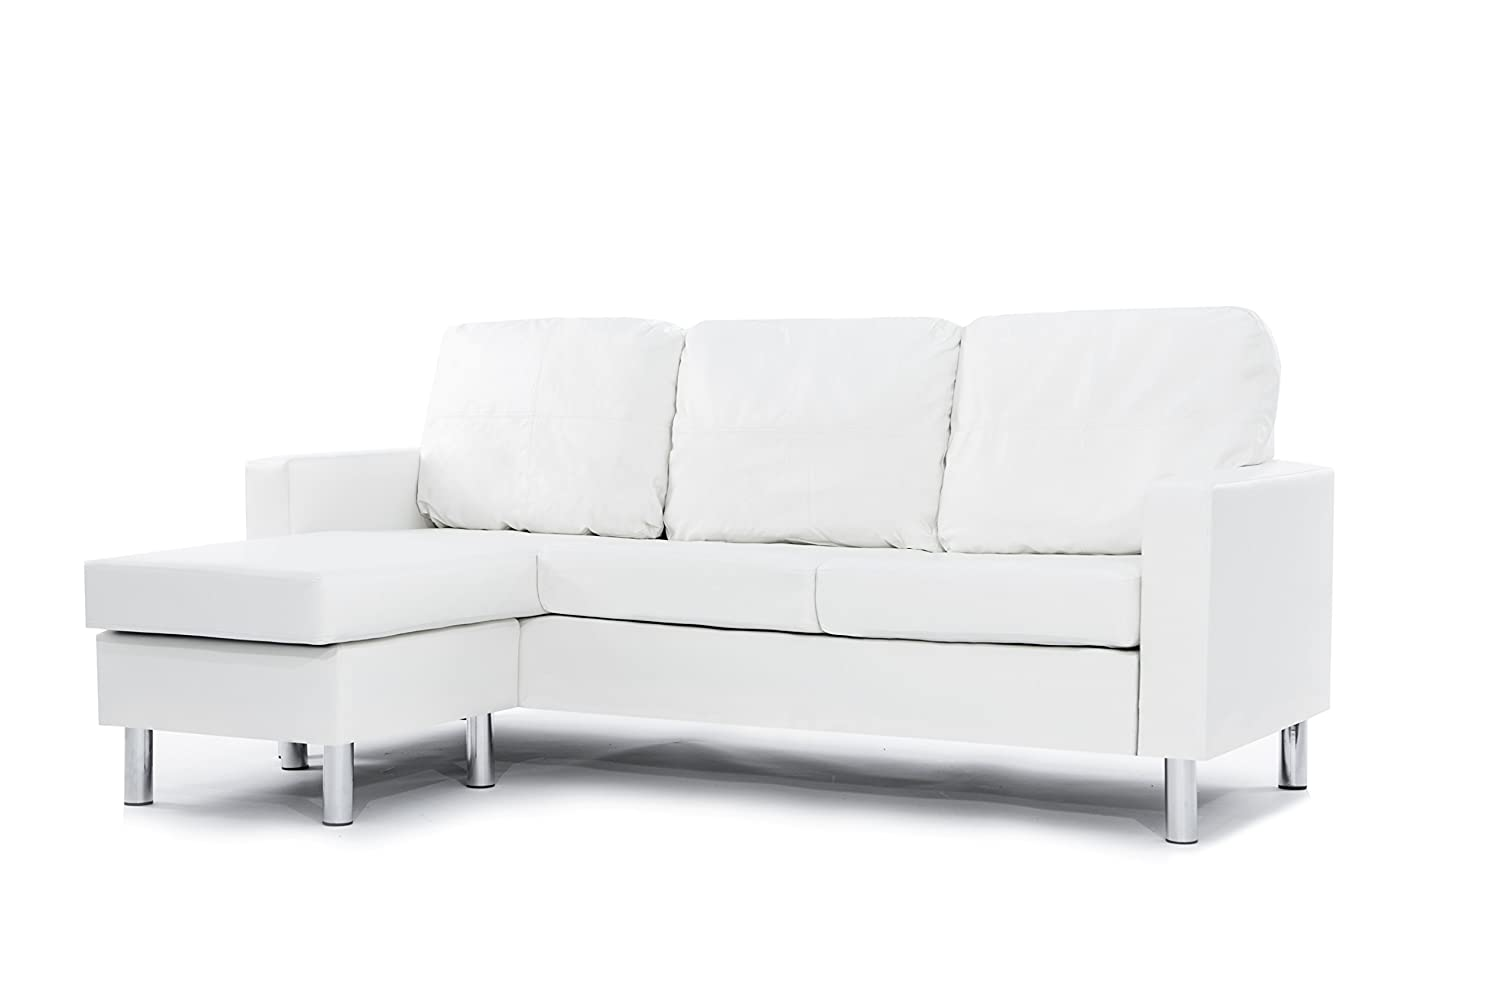 amazoncom modern bonded leather sectional sofa small space couch white kitchen u0026 dining